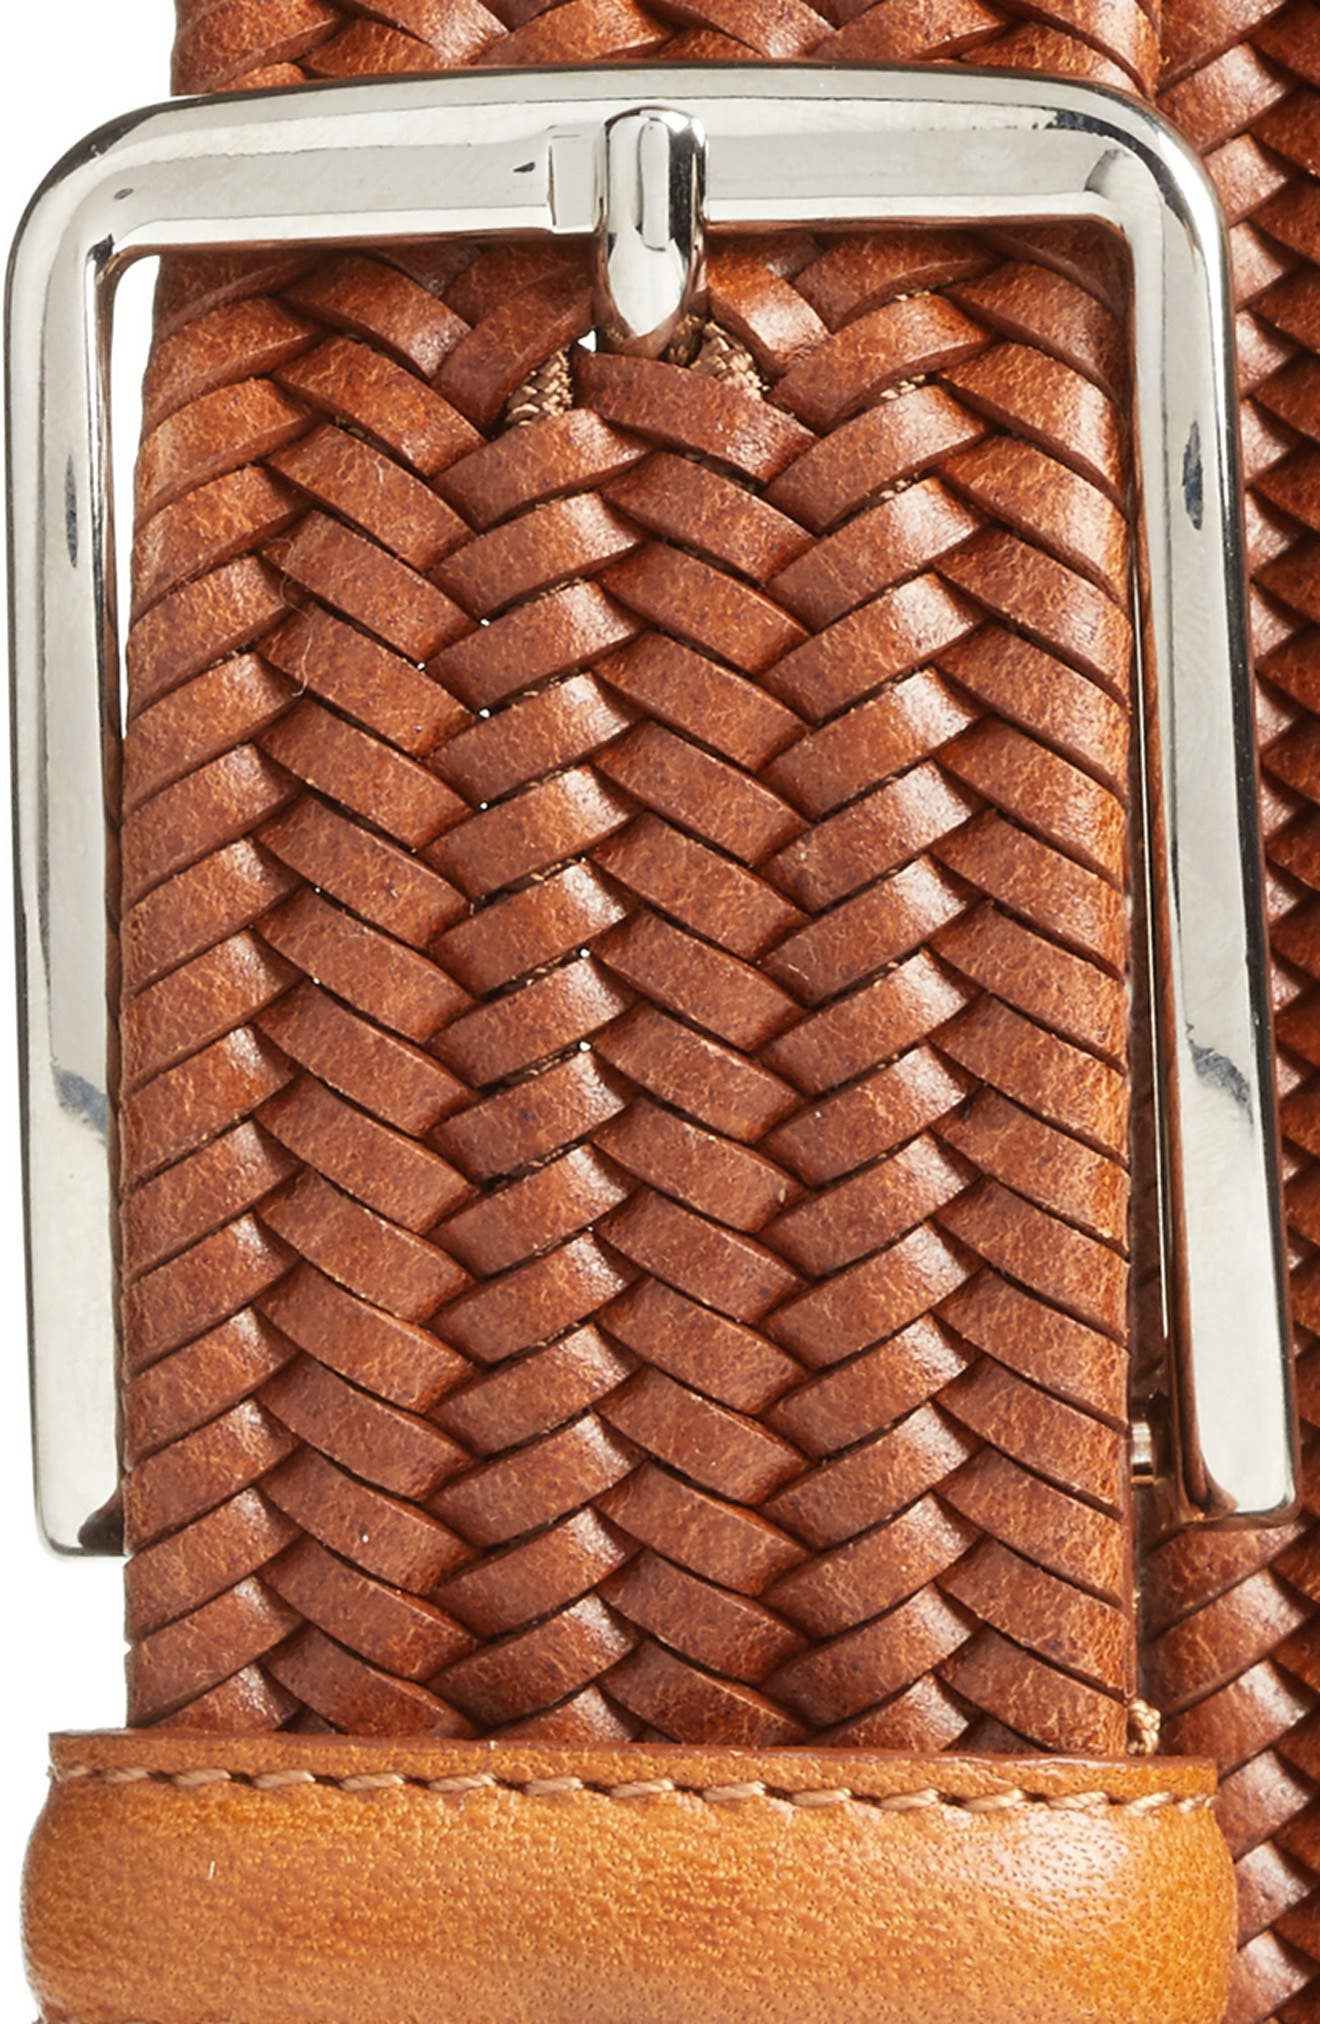 Lexington Braided Leather Belt,                             Alternate thumbnail 2, color,                             241